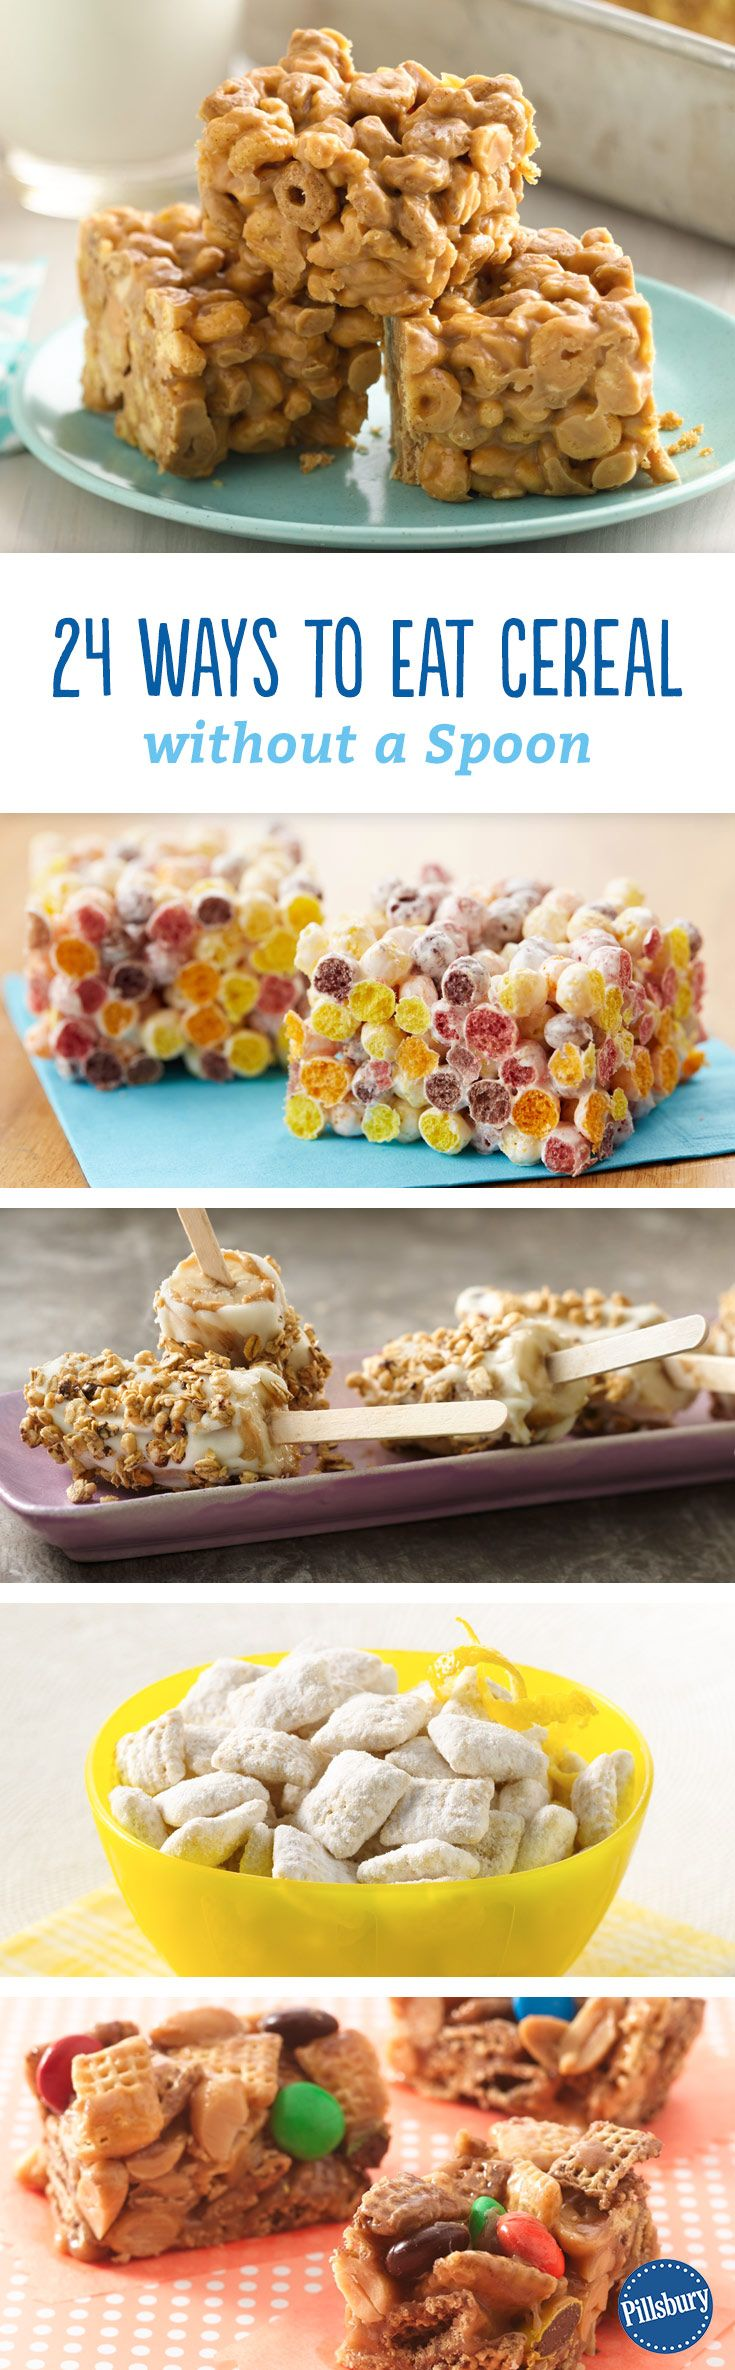 24 Ways to Eat Cereal Without a Spoon: Cereal is delicious no matter how you eat it, but it's even more fun when it's baked into bars, blended into smoothies and everything in between.